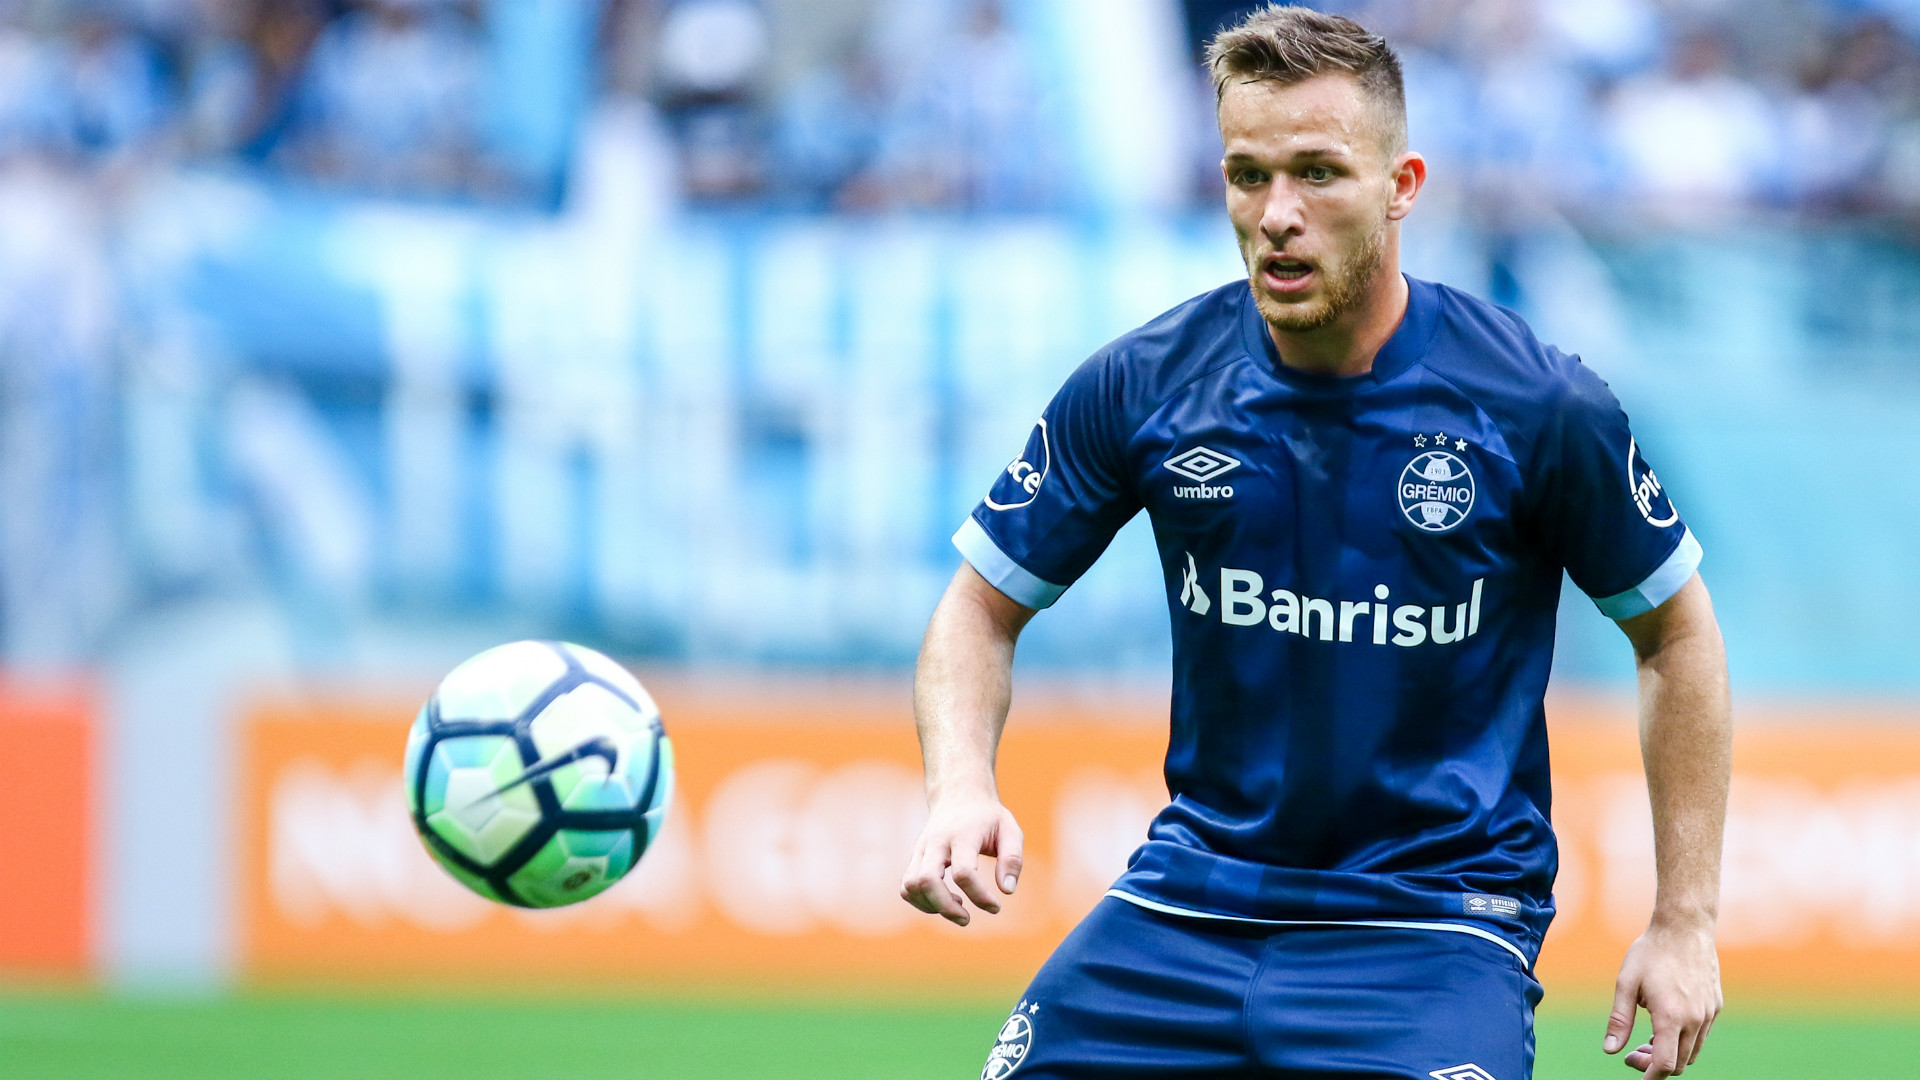 arthur gremio wrtfpeom1wqa1d9f7qmwljesd - ROUND-UP of 30/1/2018 TRANSFER NEWS, DONE DEALS AND RUMOURS